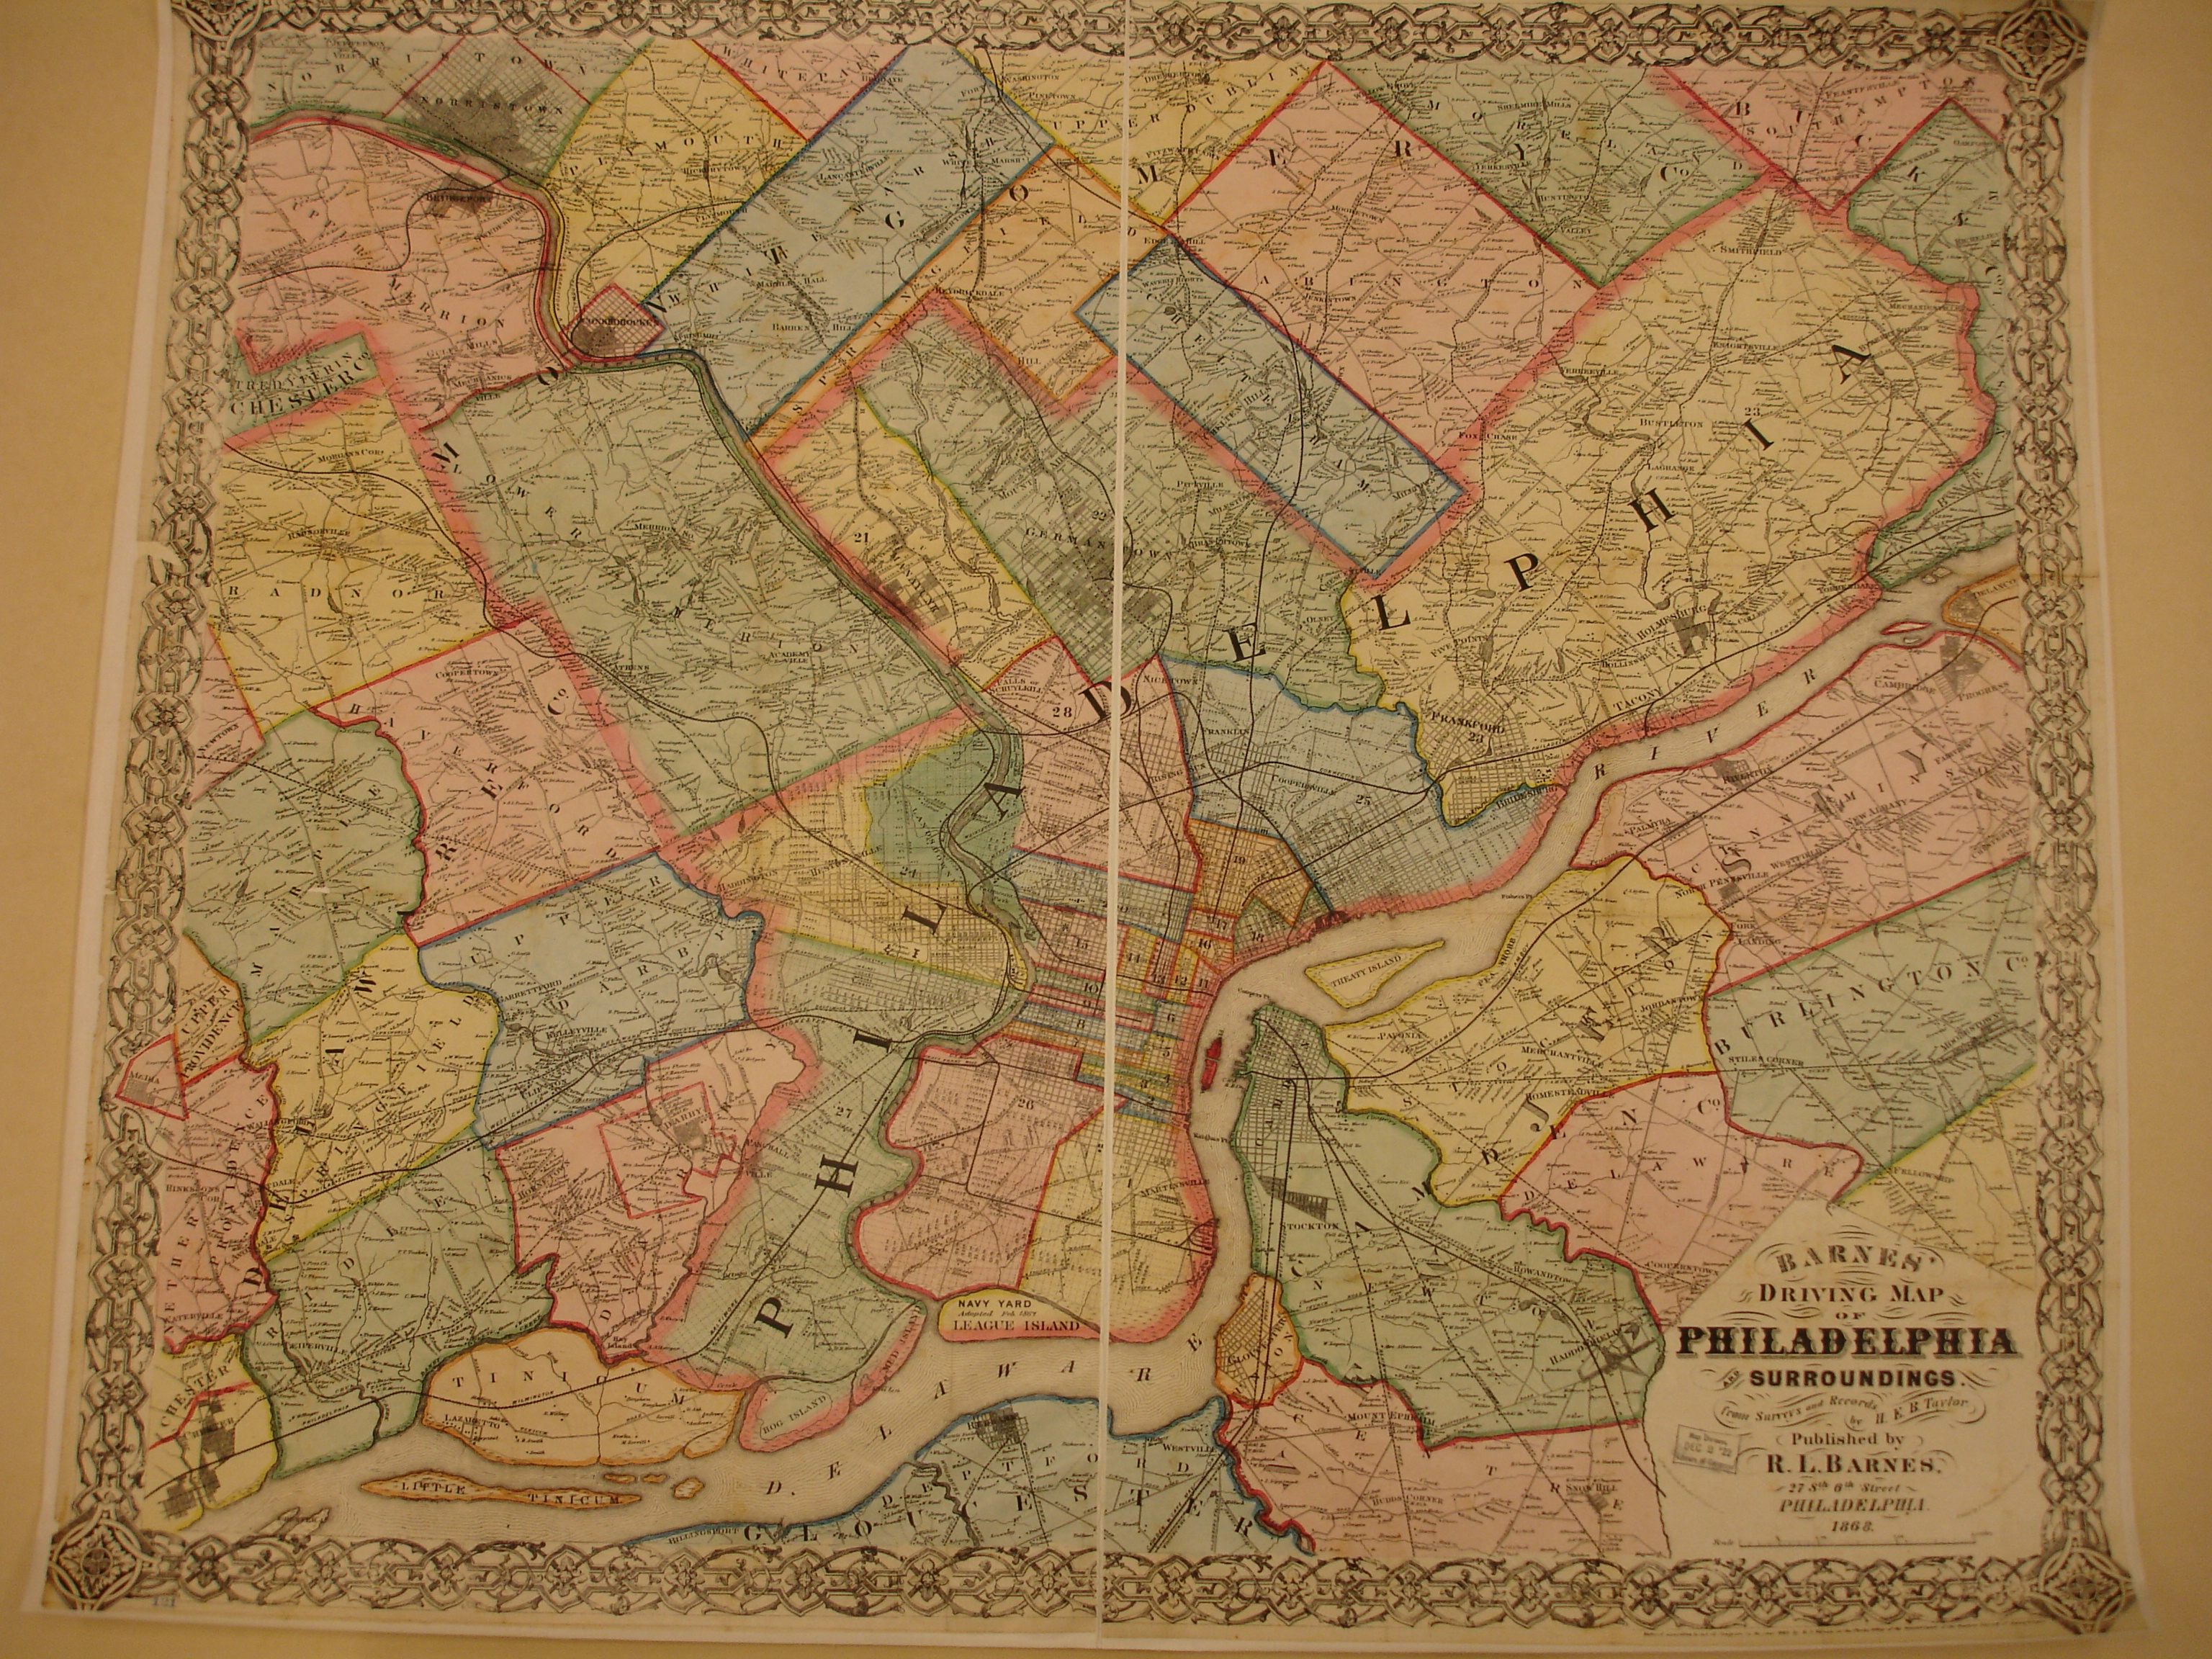 Ancestor Tracks  Philadelphia Area Resources Overview of 1868 Map